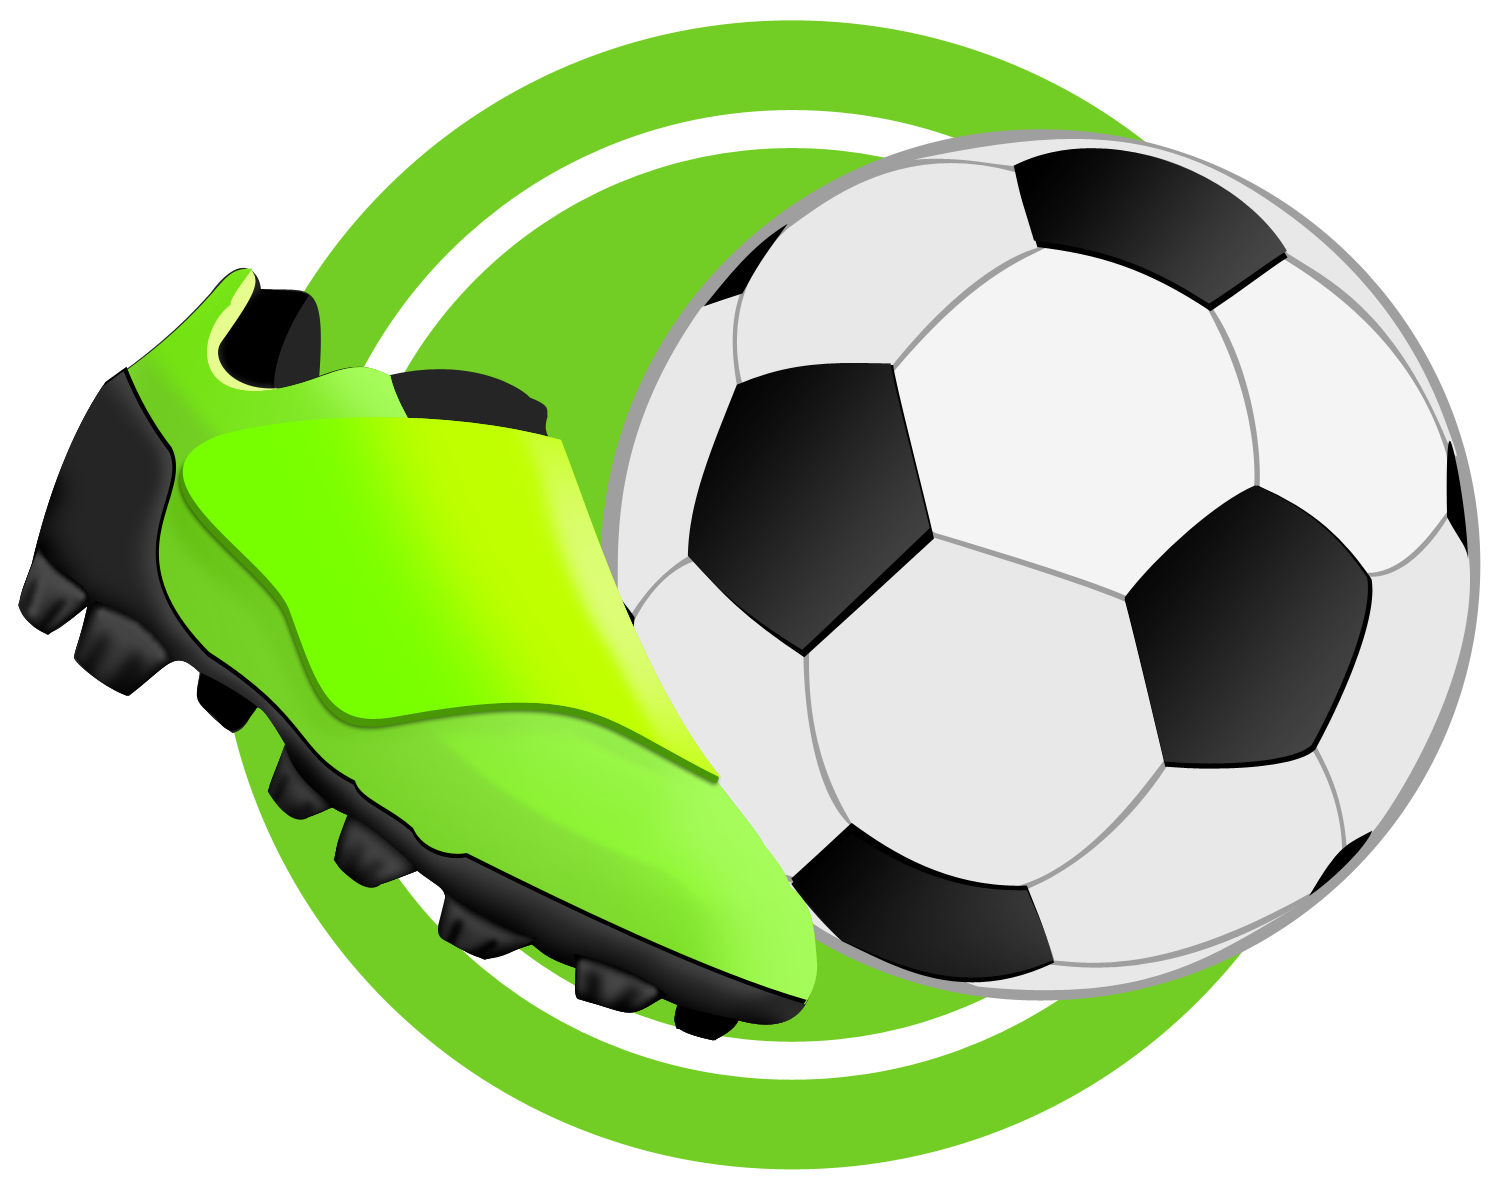 English football clipart clip freeuse download High Resolution Football Png Clipart #25010 - Free Icons and PNG ... clip freeuse download